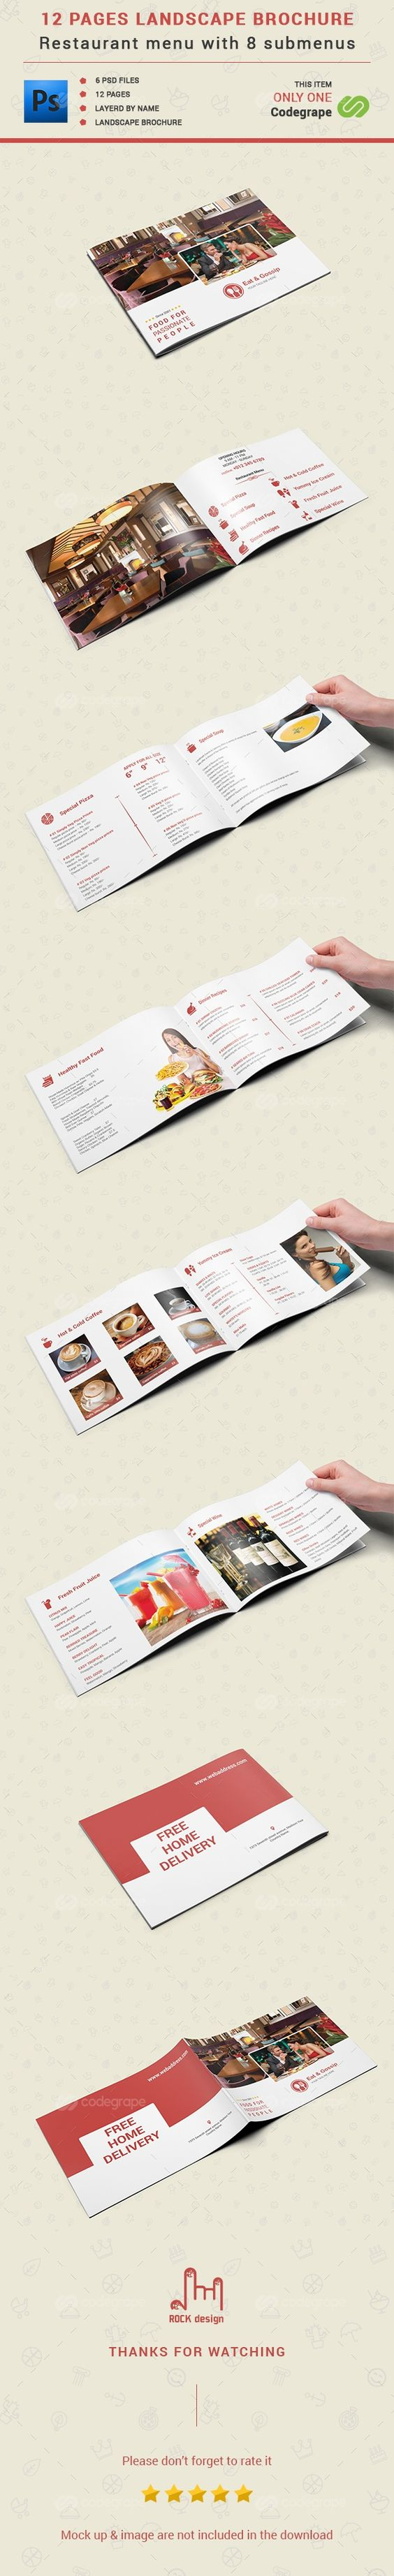 12 Pages Restaurant Menu on @codegrape. More Info: http://www.codegrape.com/item/12-pages-restaurant-menu/8182